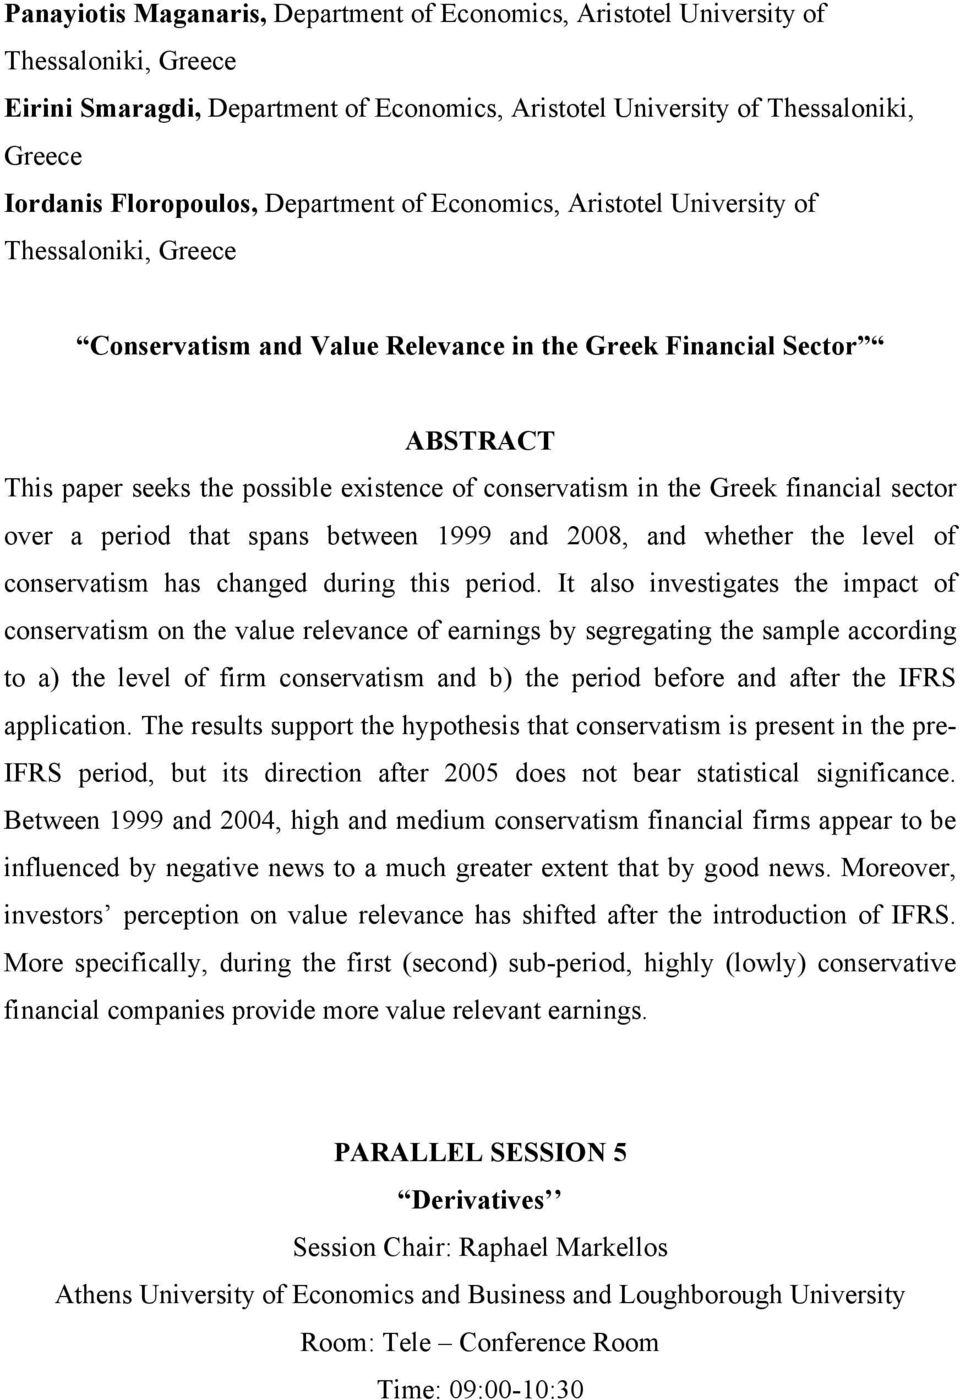 conservatism in the Greek financial sector over a period that spans between 1999 and 2008, and whether the level of conservatism has changed during this period.